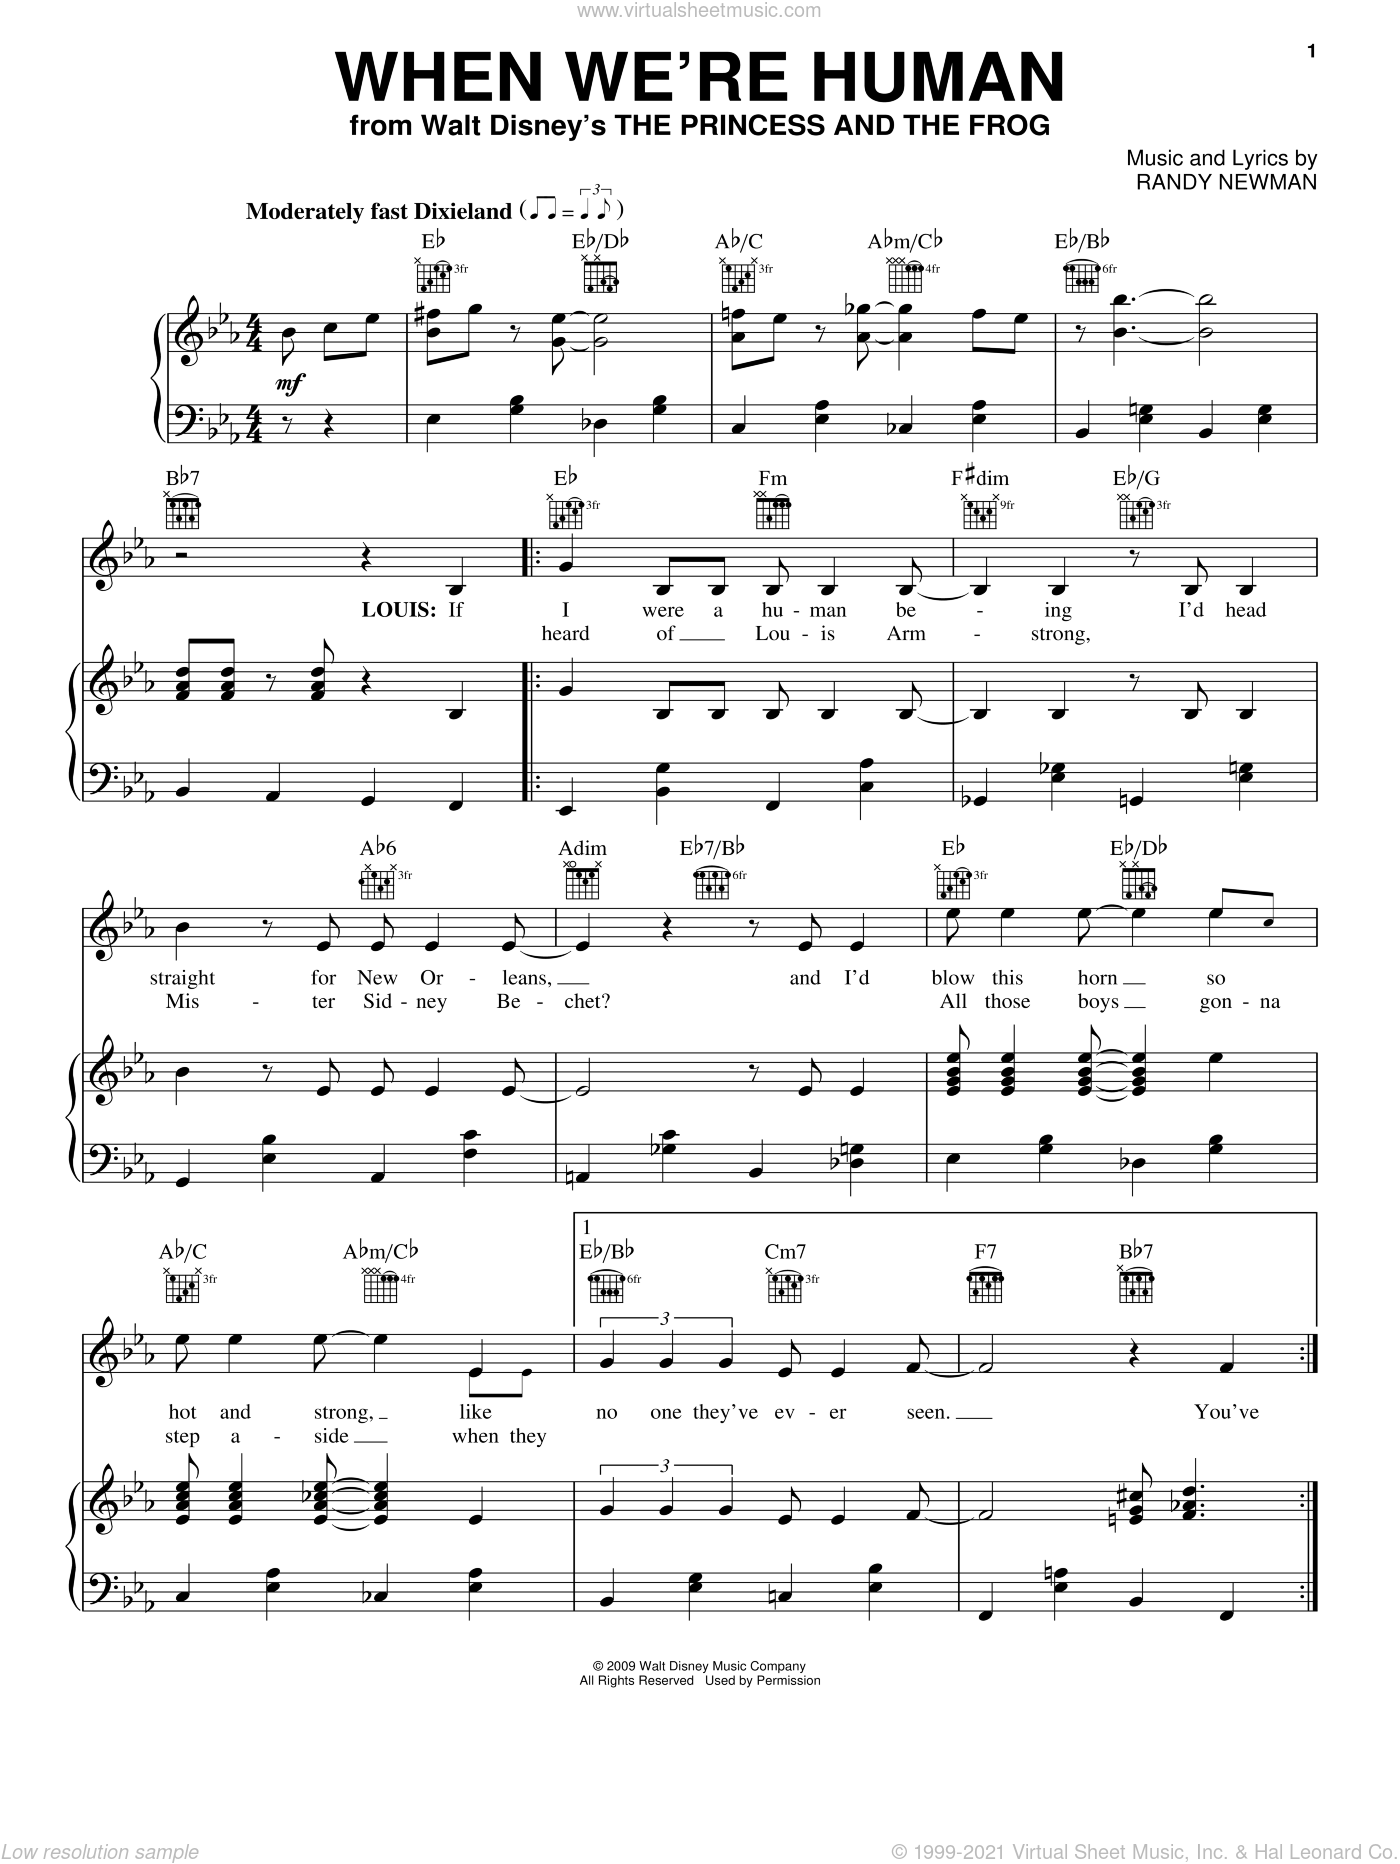 When We're Human sheet music for voice, piano or guitar by Anika Noni Rose, The Princess And The Frog (Movie) and Randy Newman, intermediate